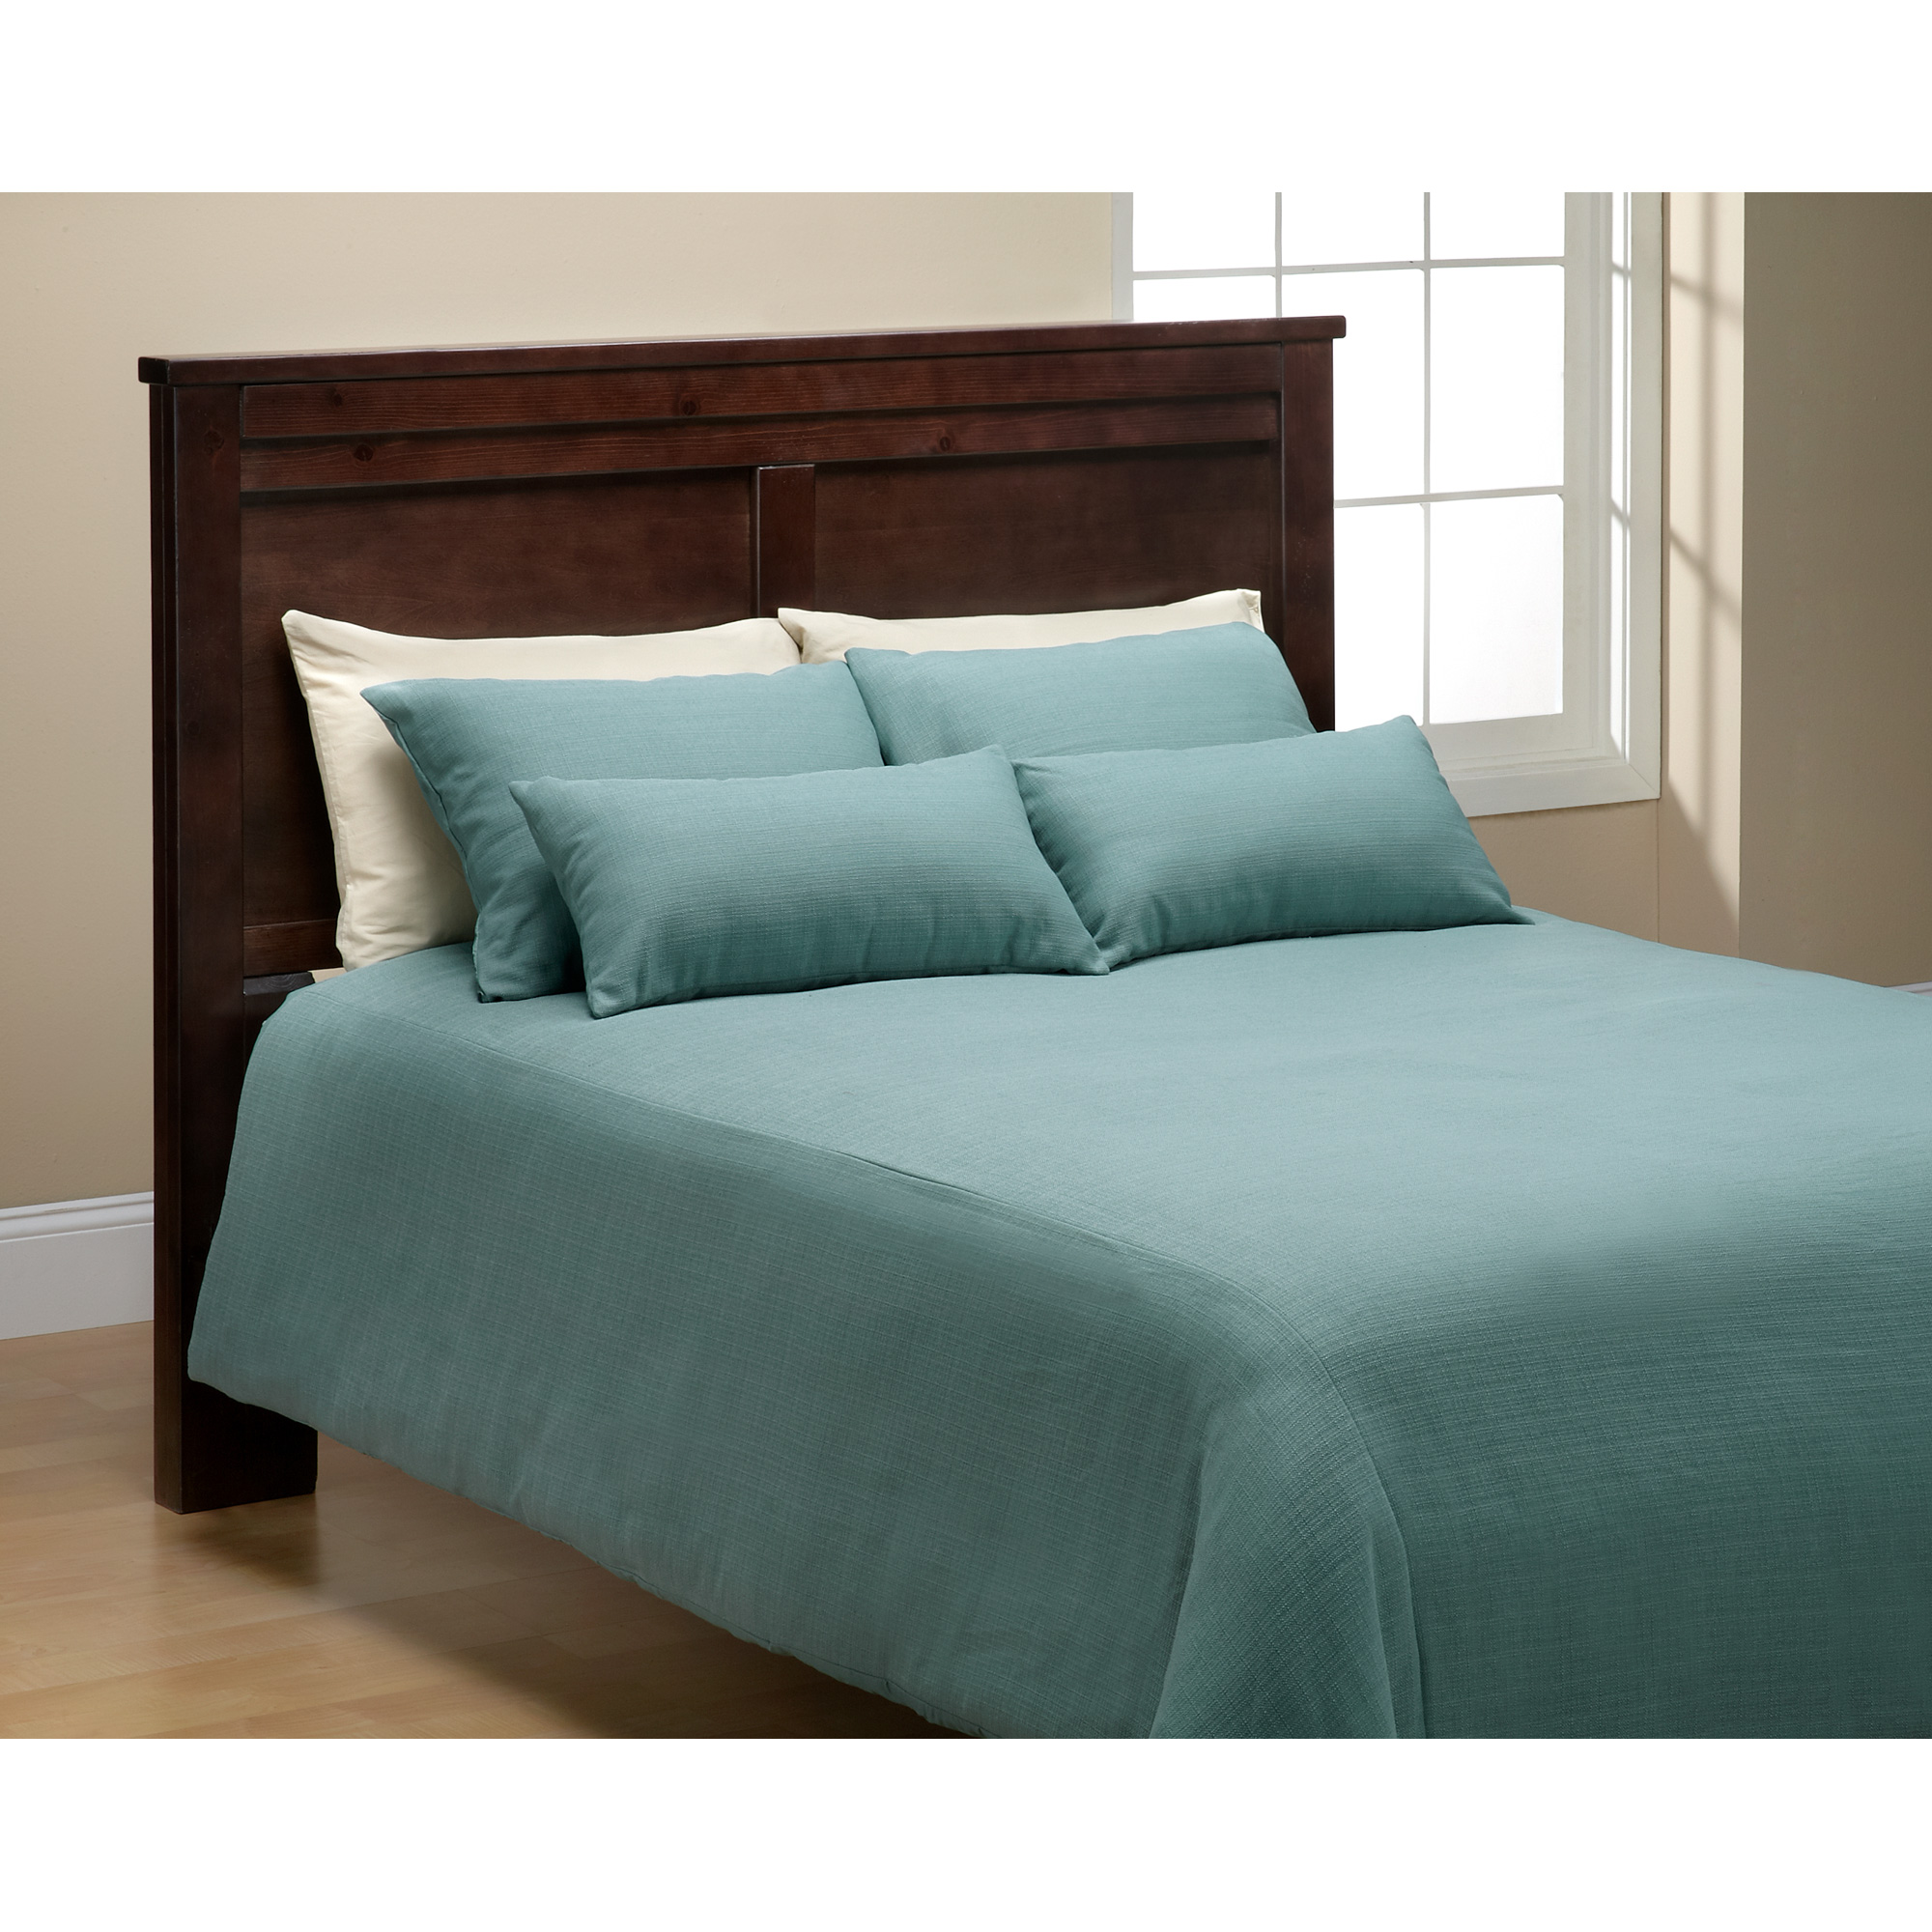 Sis Enterprises | Belfast 6 Piece Teal Queen Bedding Set